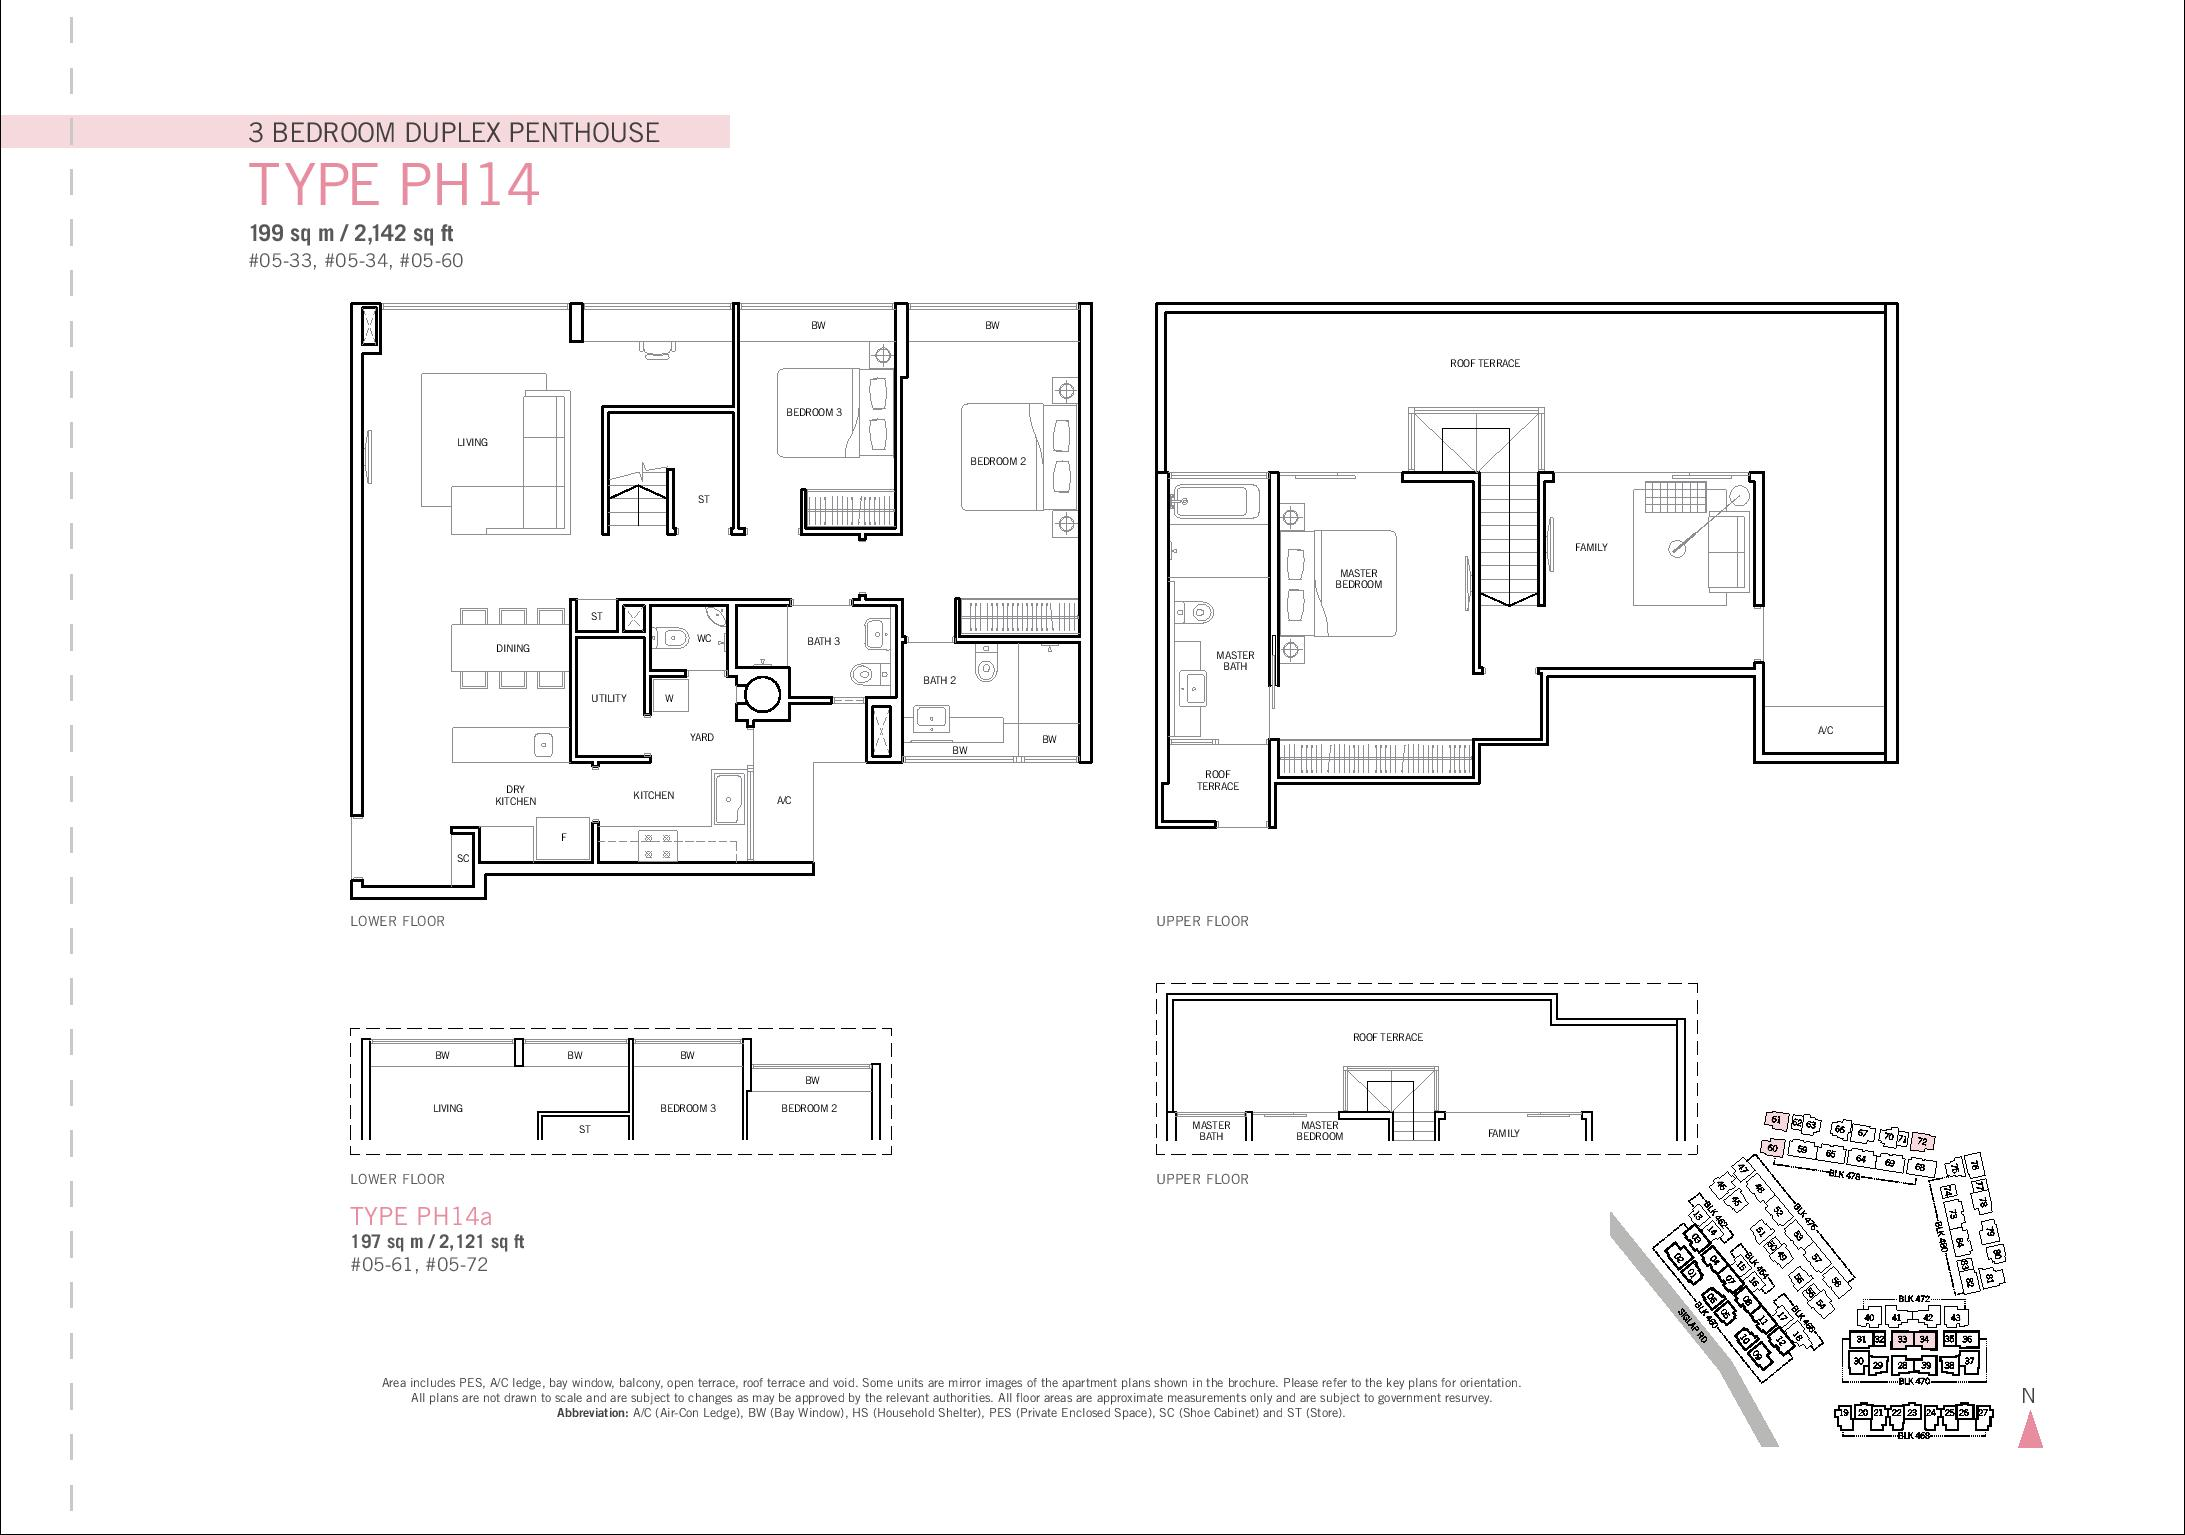 Penthouse 3 bed duplex flamingo valley for 3 bedroom duplex plans